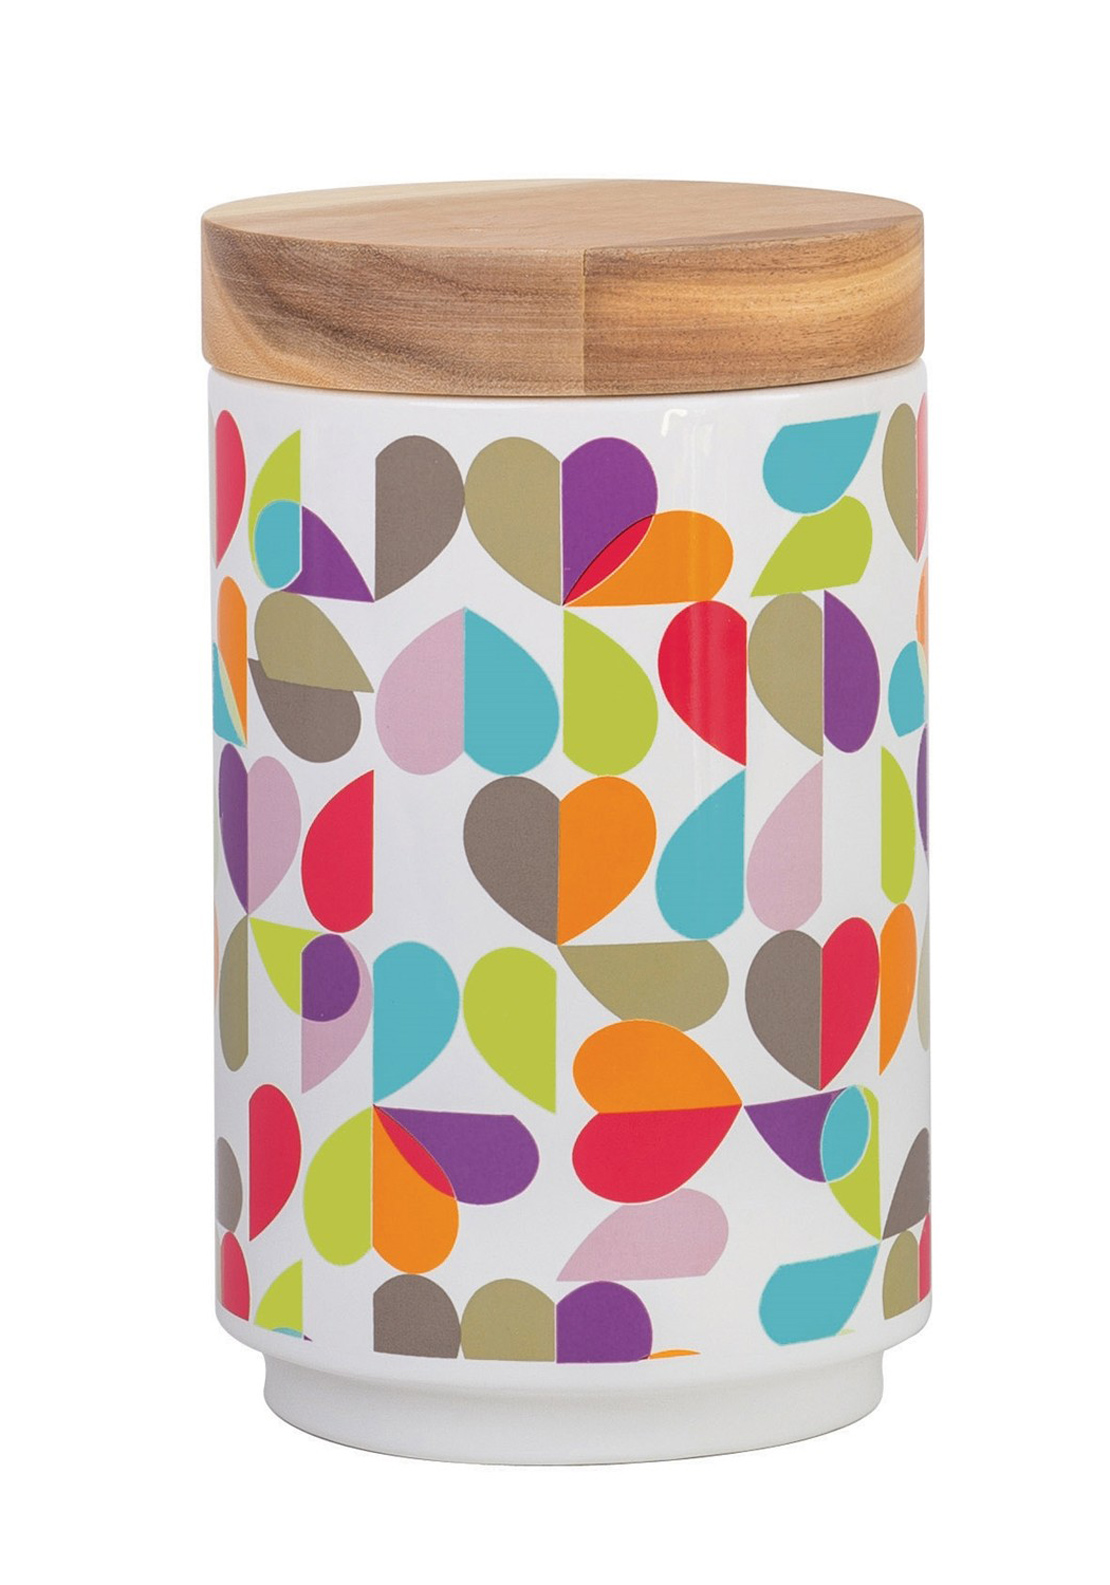 Beau & Elliot Broken Hearted Biscuit Jar, Multi-Coloured